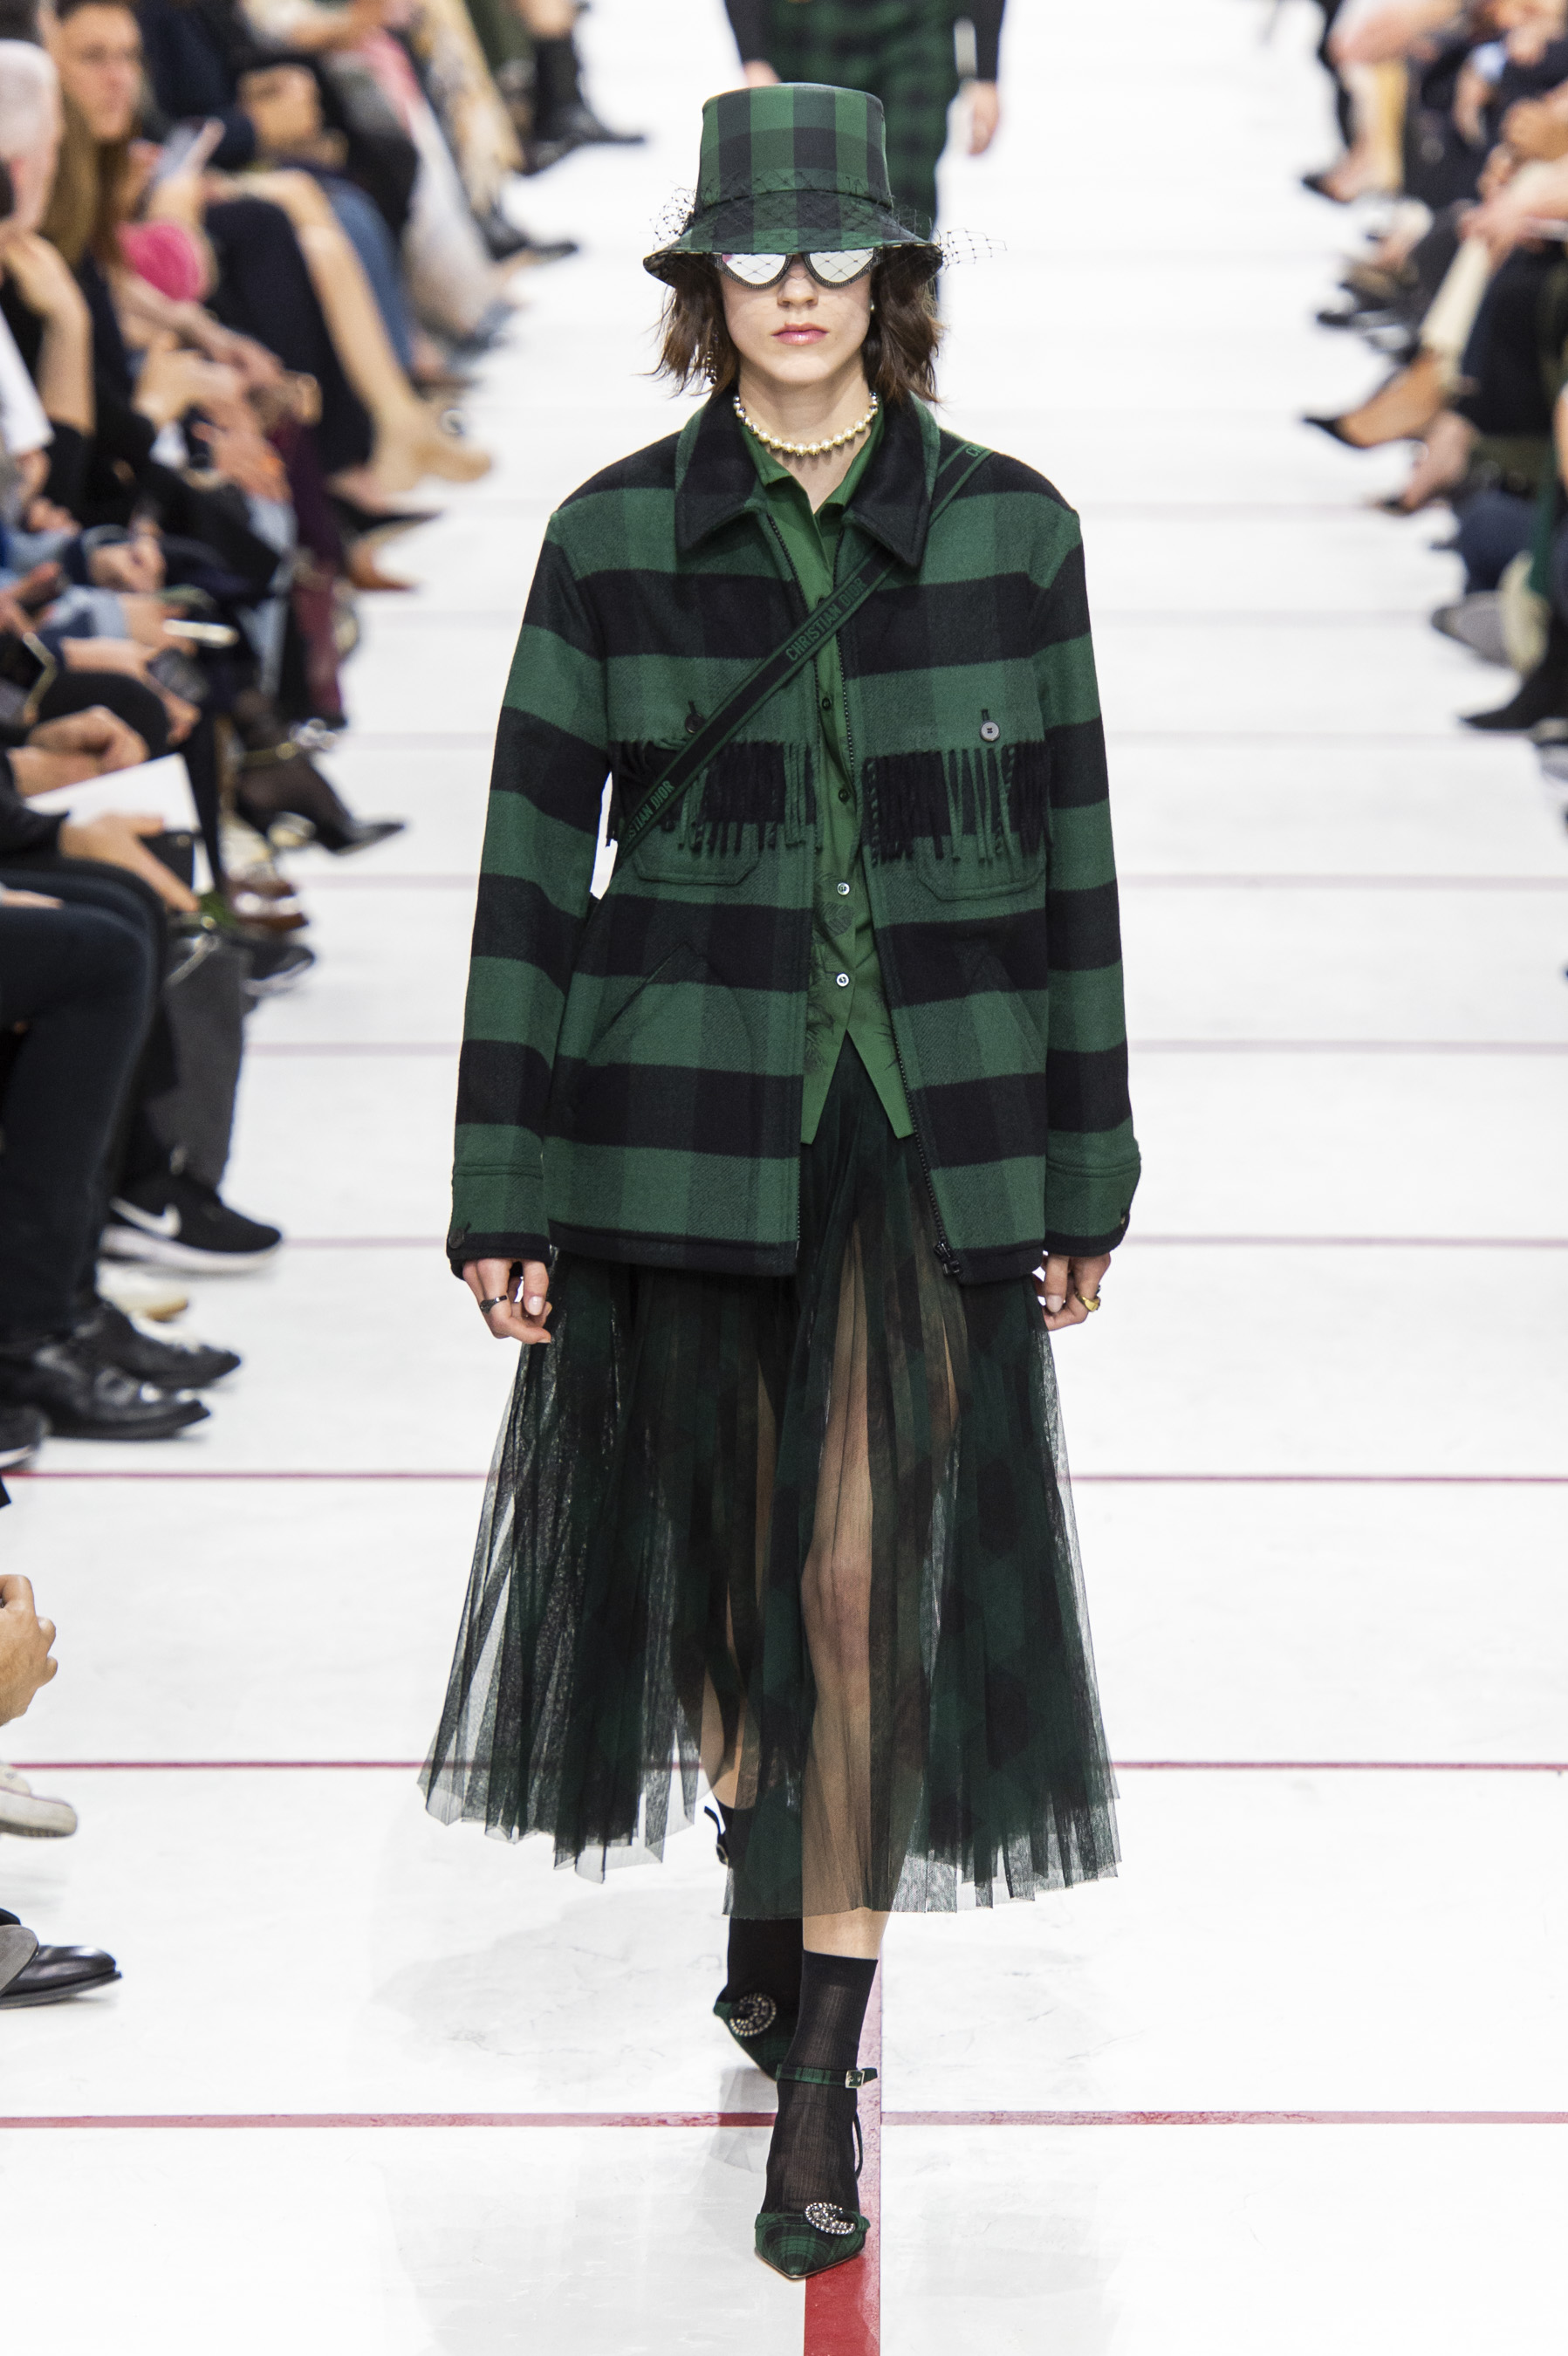 Christian Dior Fall 2019 Fashion Show